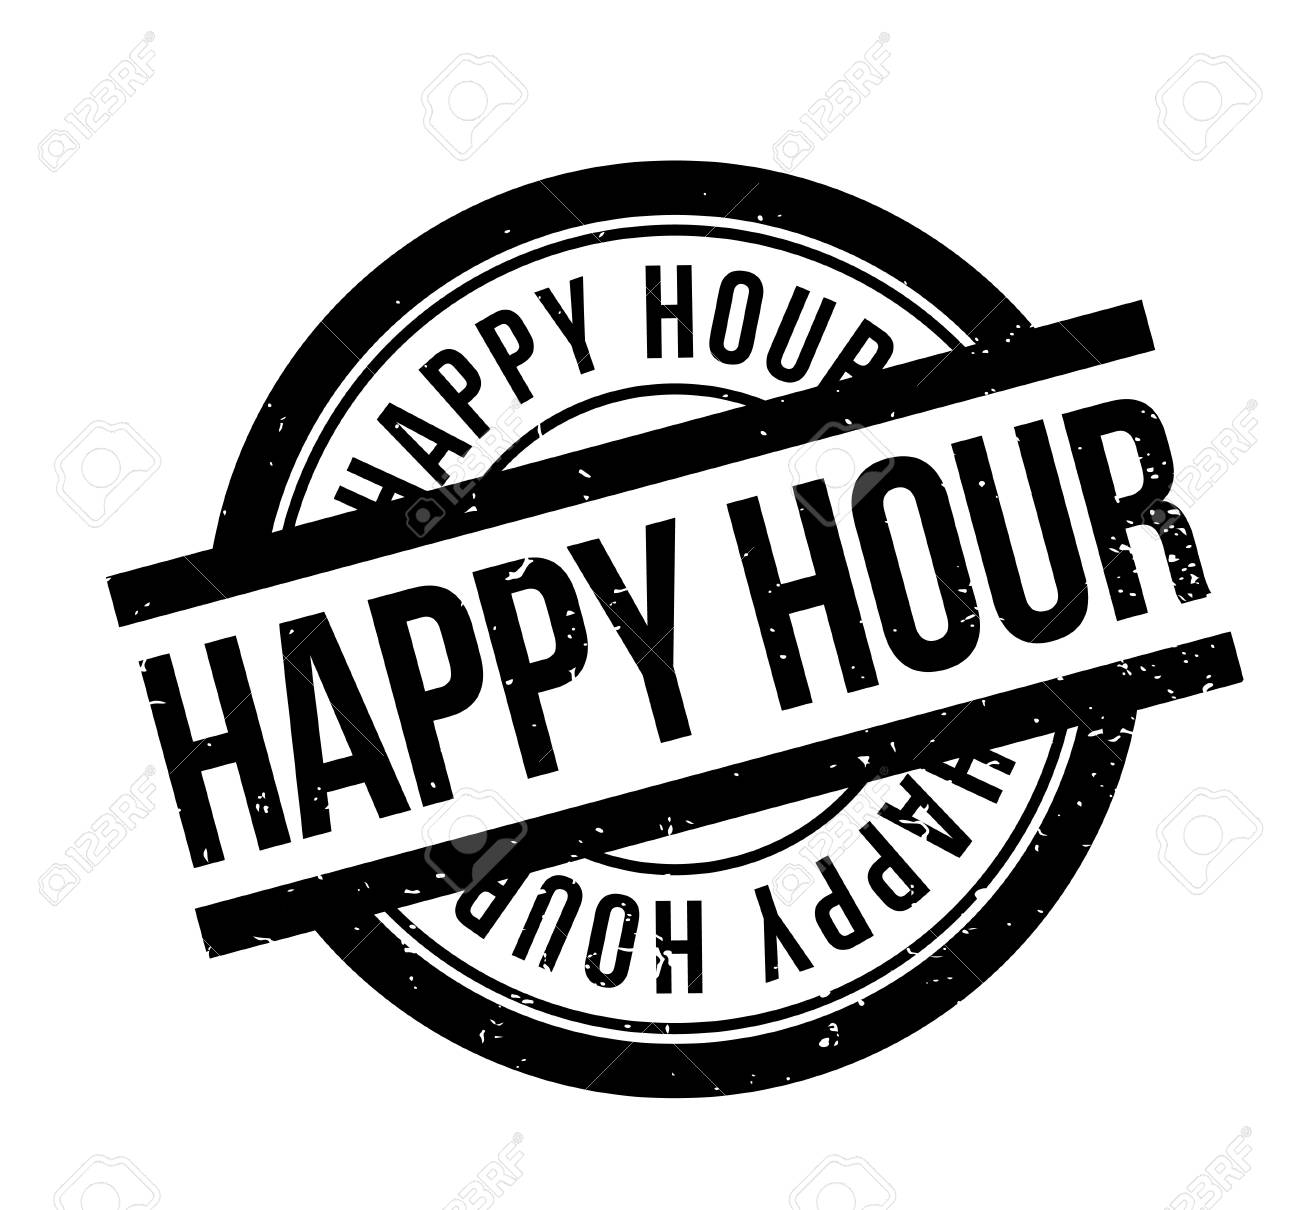 Happy Hour rubber stamp - 82842292